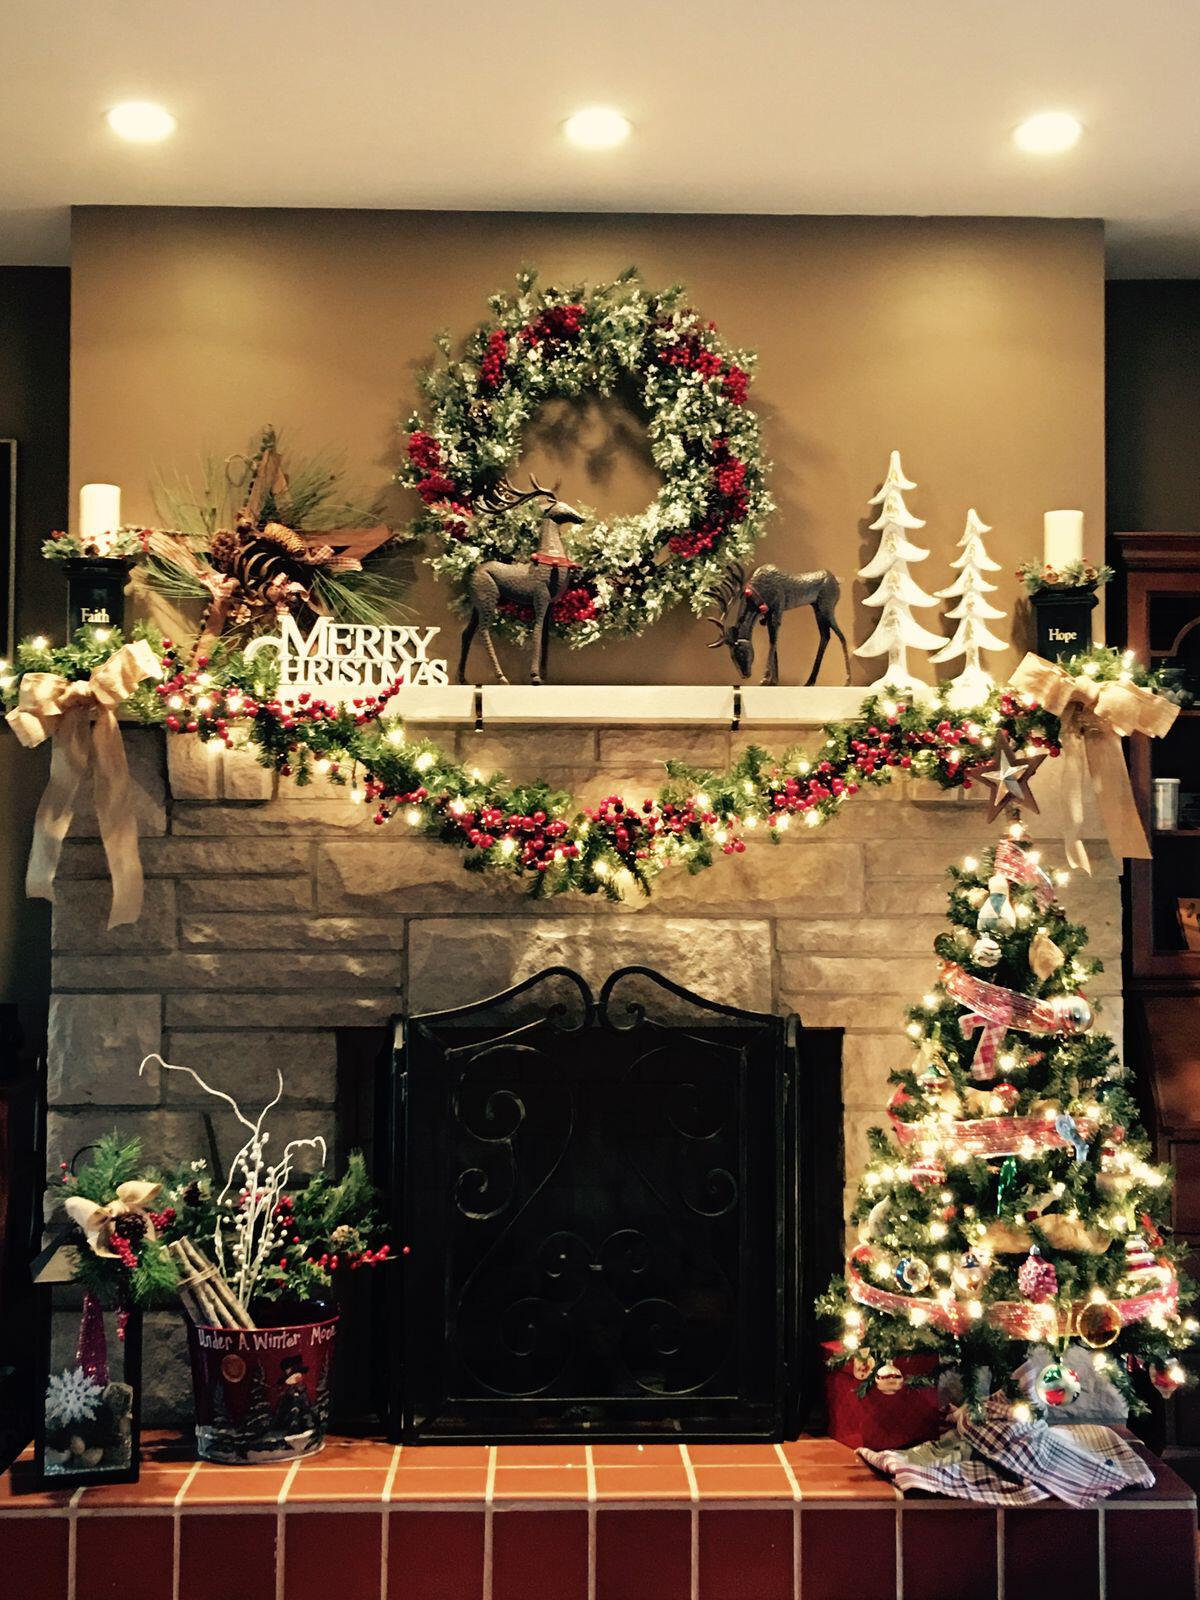 35 beautiful xmas fireplace decor ideas 1 - 35 beautiful xmas fireplace decor ideas